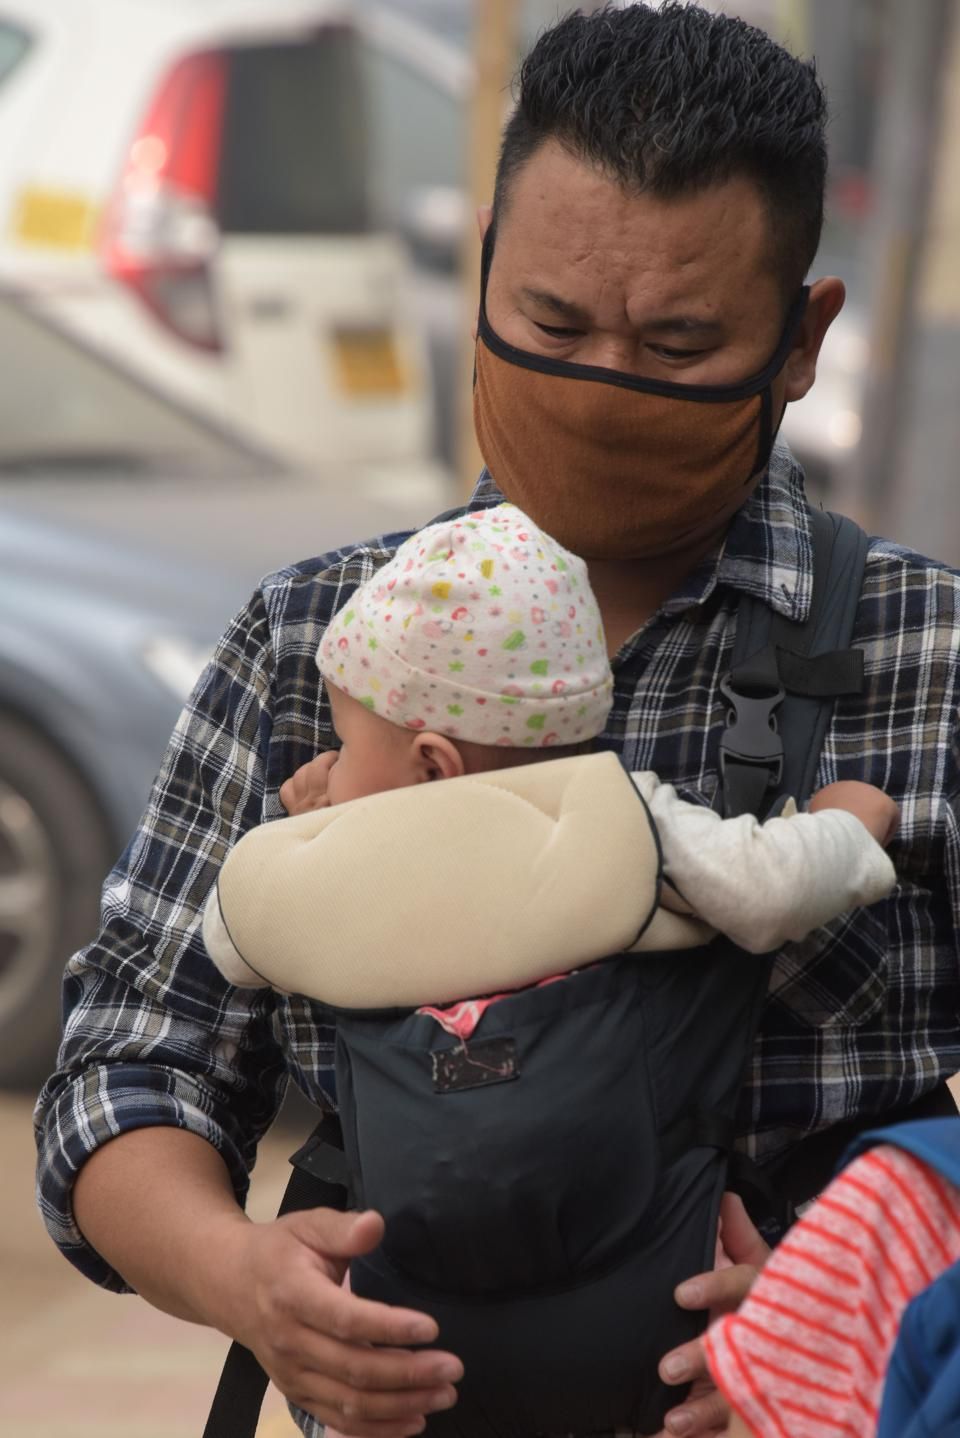 Adult wearing mask; infant in carrier.